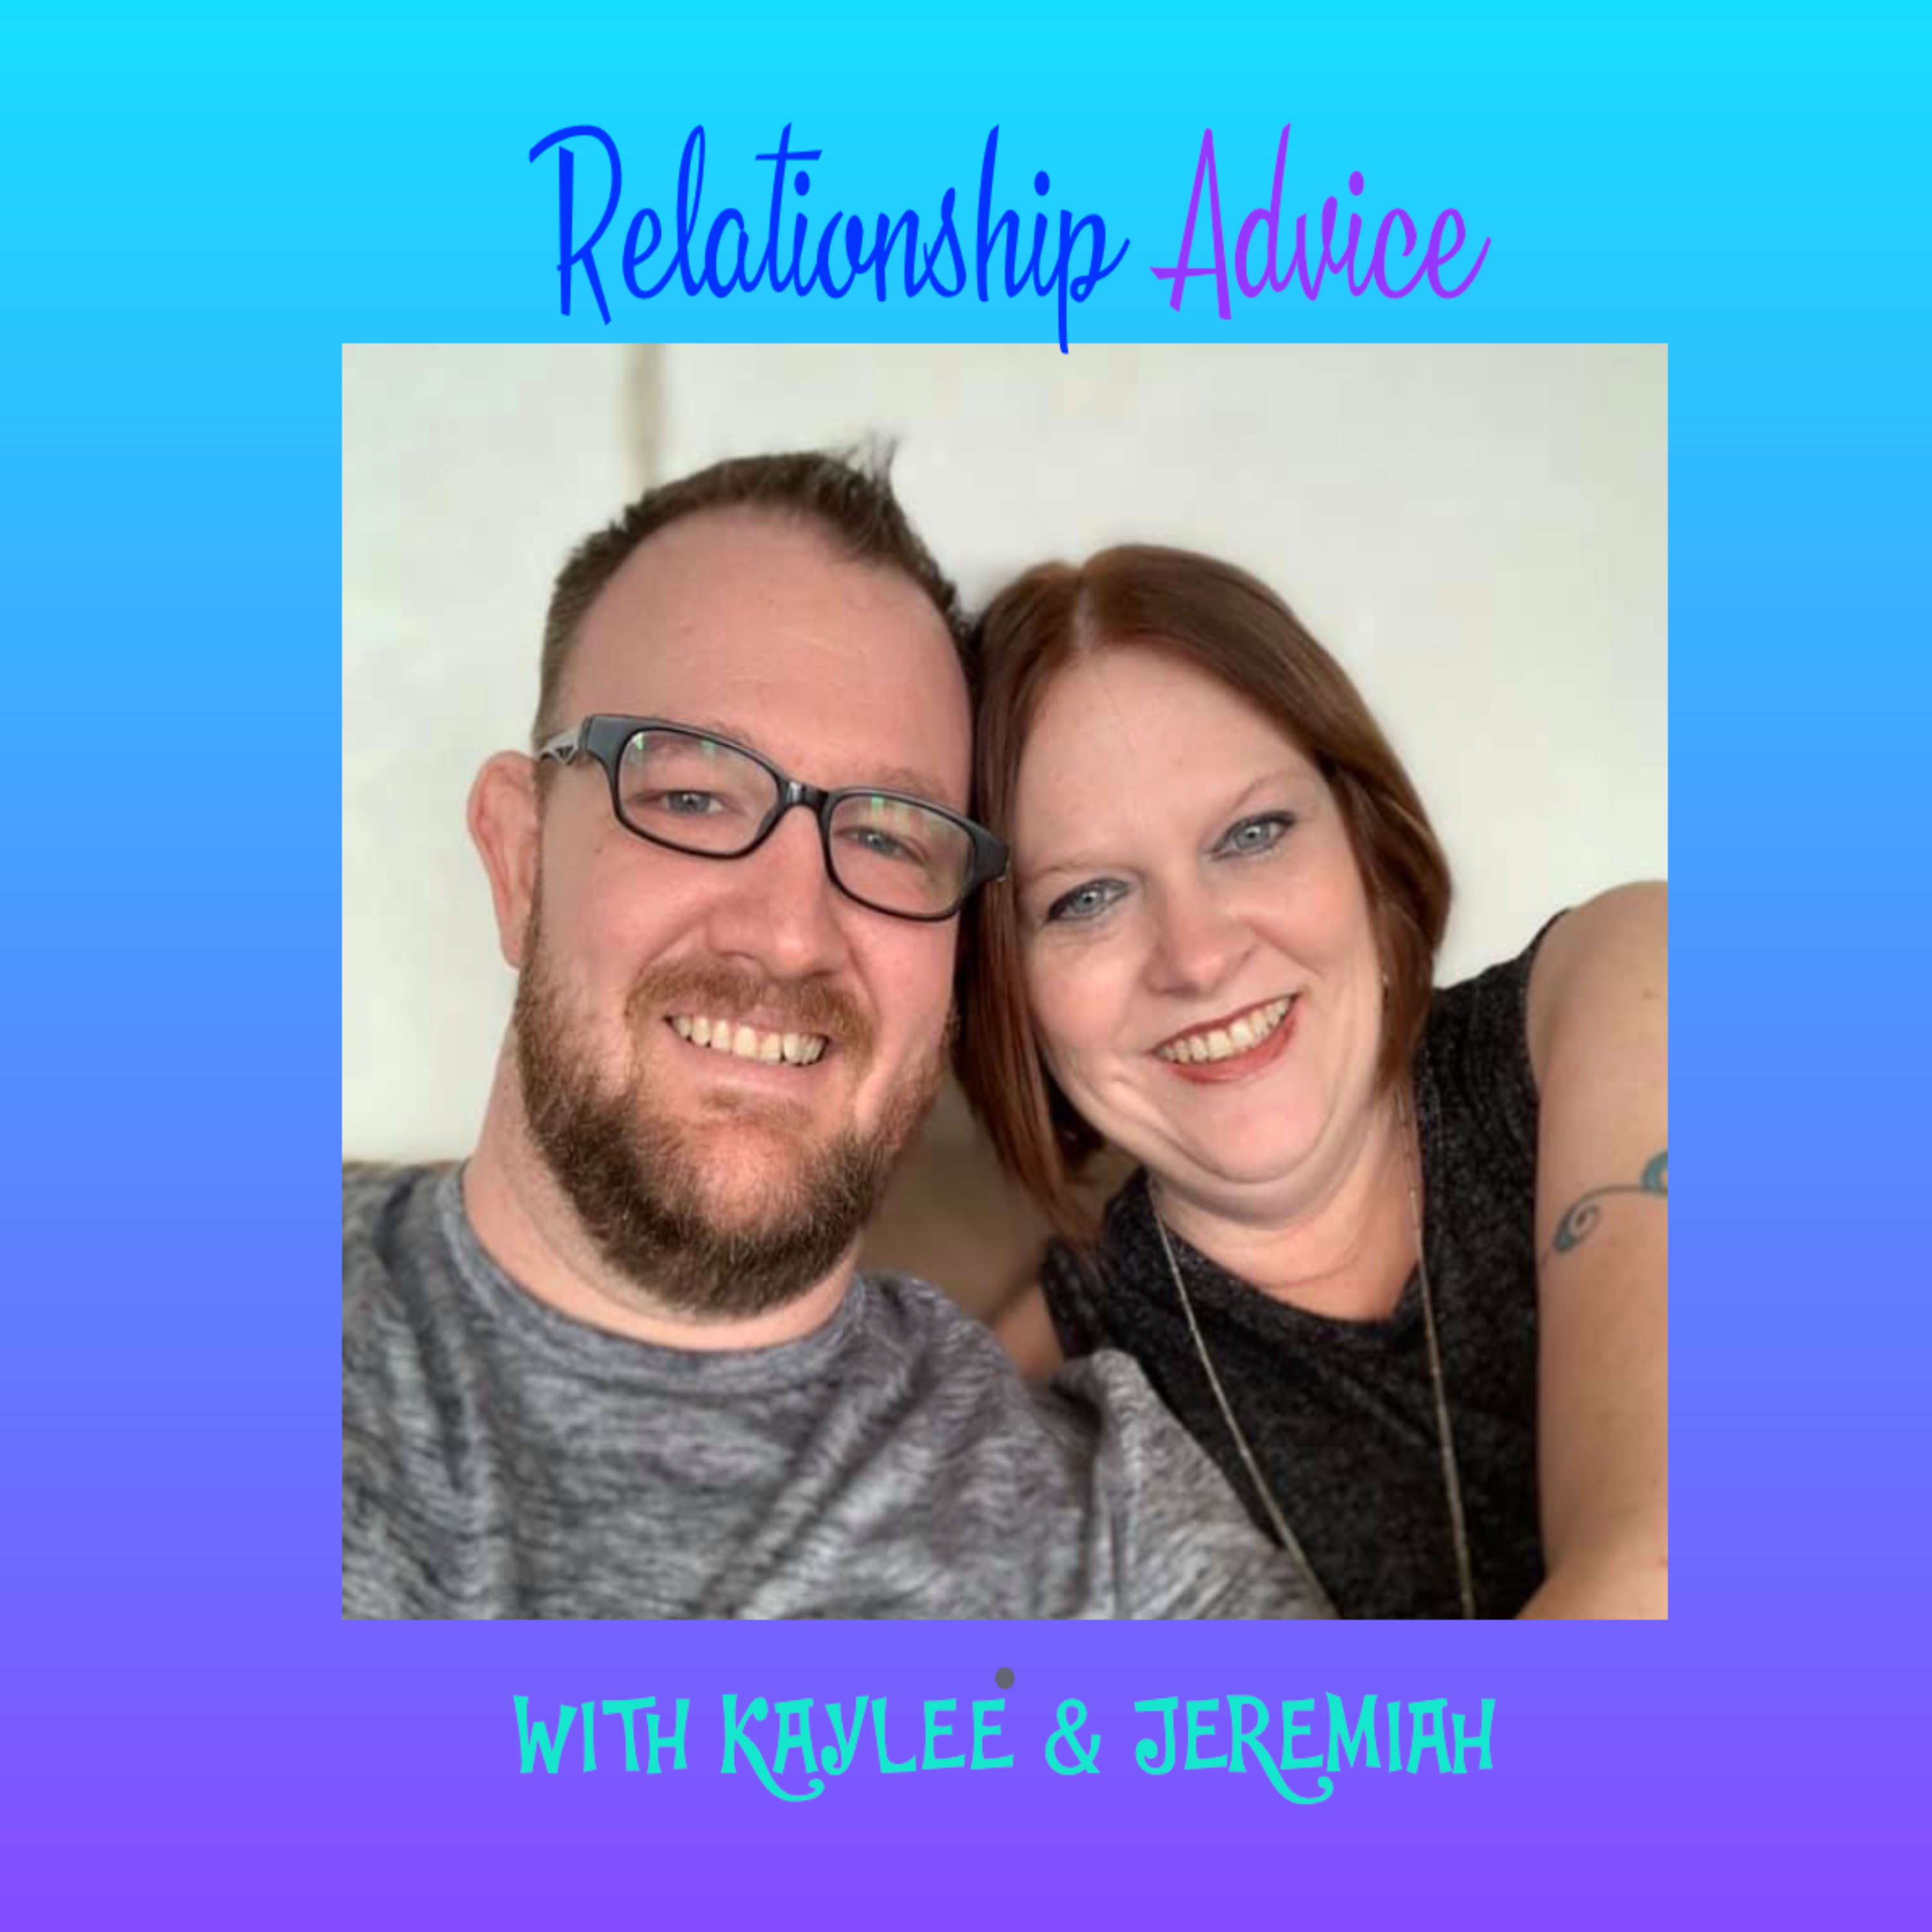 Kaylee & Jeremiah's Relationship Advice - Podcast #5 Should